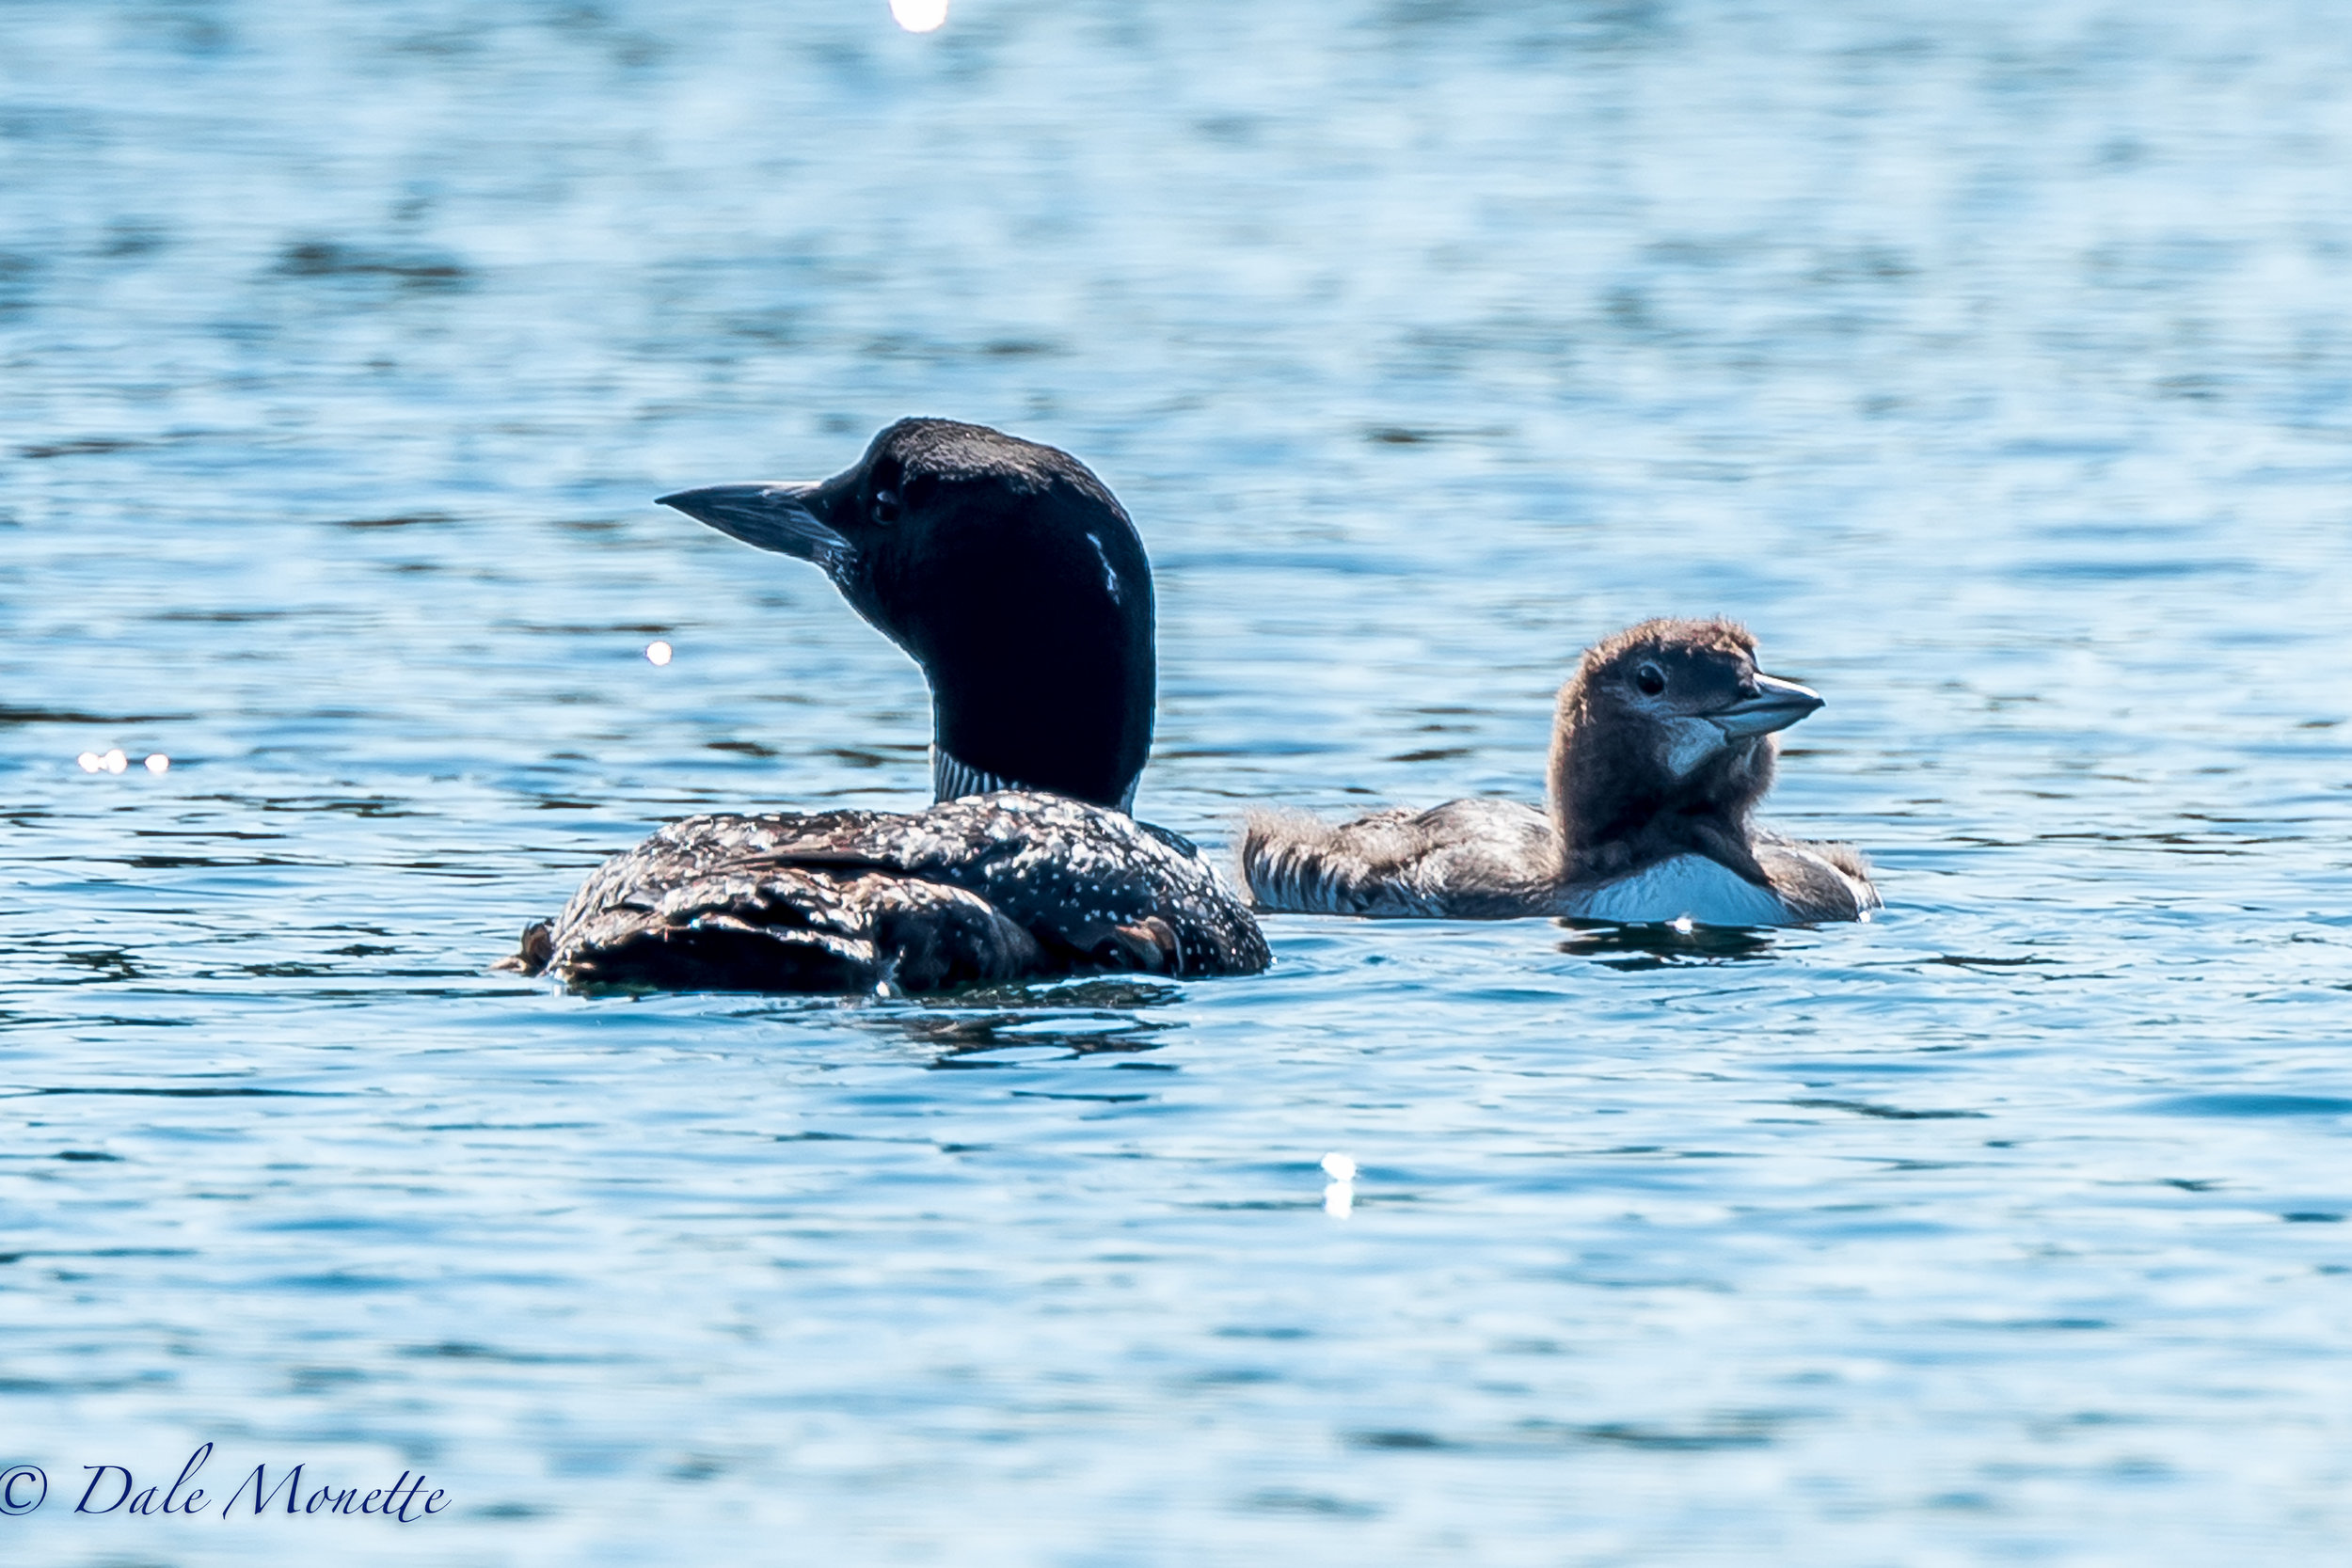 Here is Whitey on September 13th. He and his mate were about 1/2 mile apart and he had one chick. The other chick disappeared sometime in the last 2 weeks. As we drove away from these 2 loons an eagle flew over them and landed in a birch tree so it could watch them closer. 9/13/17